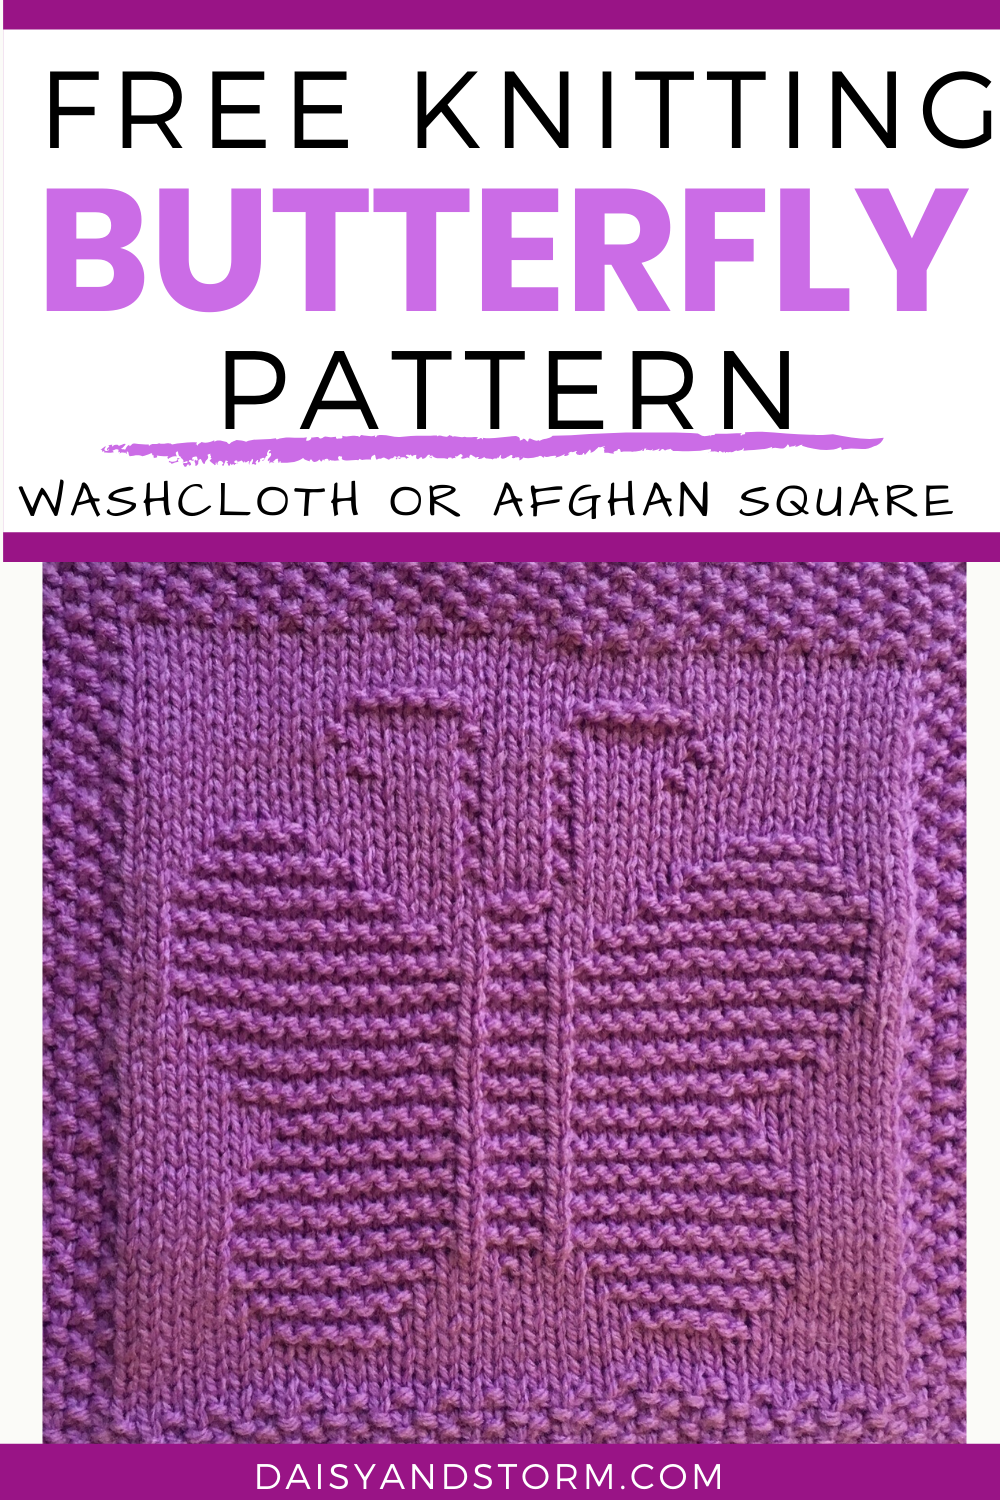 Free knitting pattern butterfly washcloth afghan square in ...